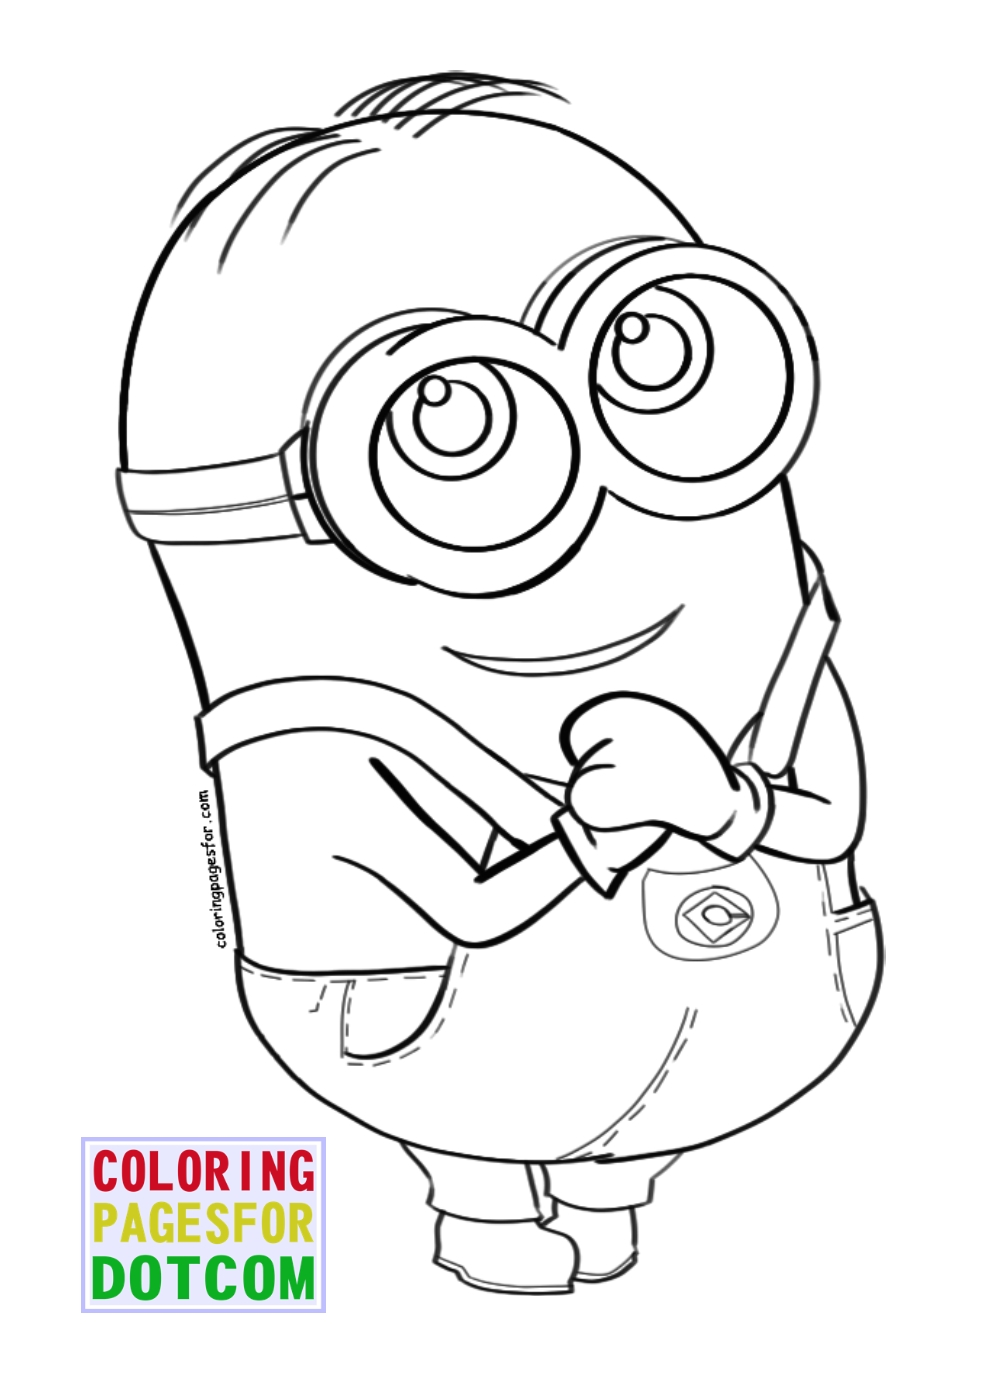 Minions Coloring Pages 3 By Blackartist22 On DeviantArt